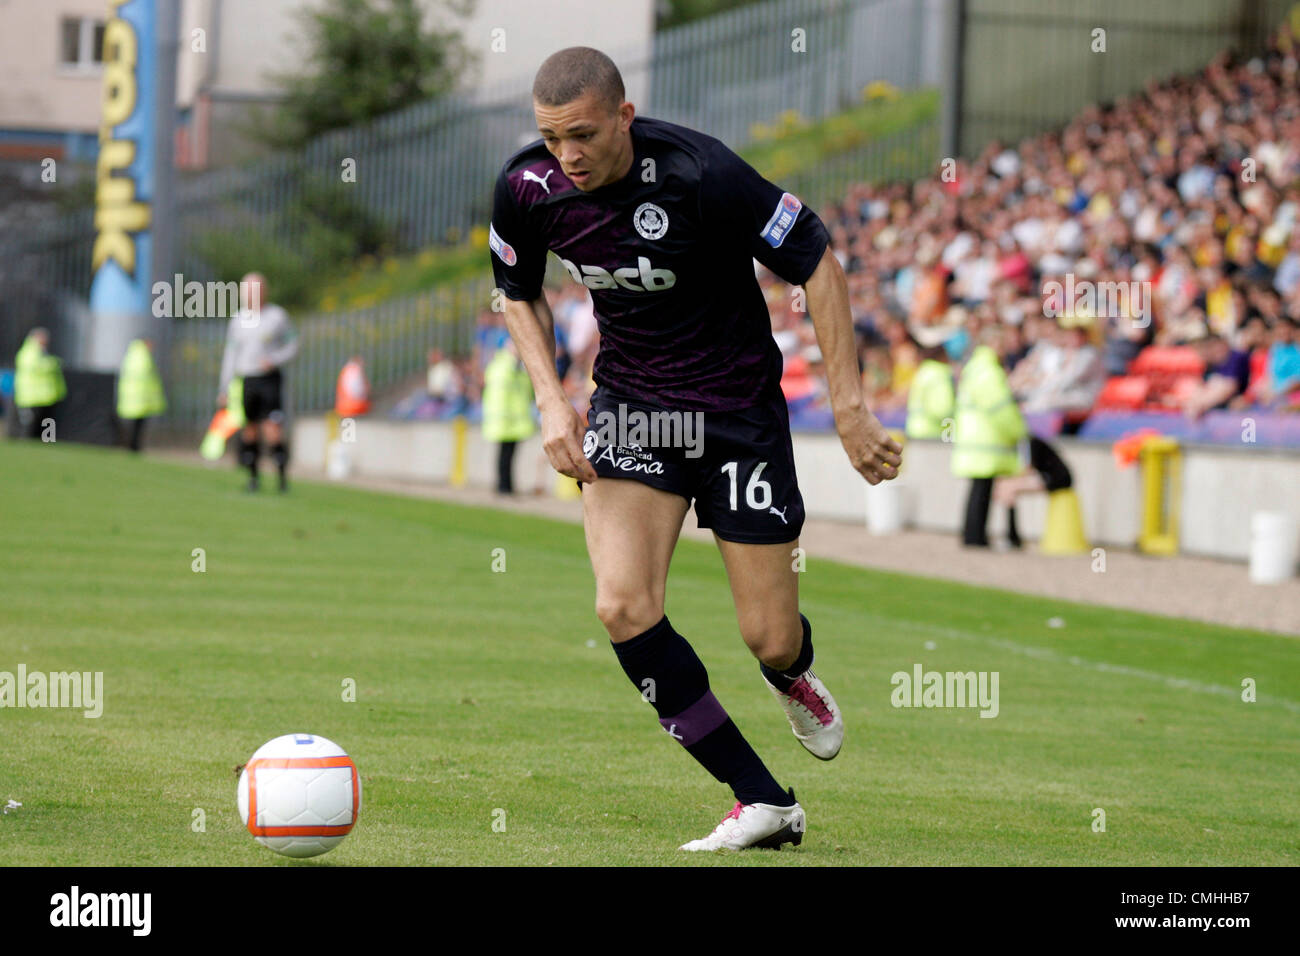 11th Aug 2012. 11.08.2012 Glasgow, Scotland.  16 Aaron Sinclair in action during the Scottish Football League Division - Stock Image